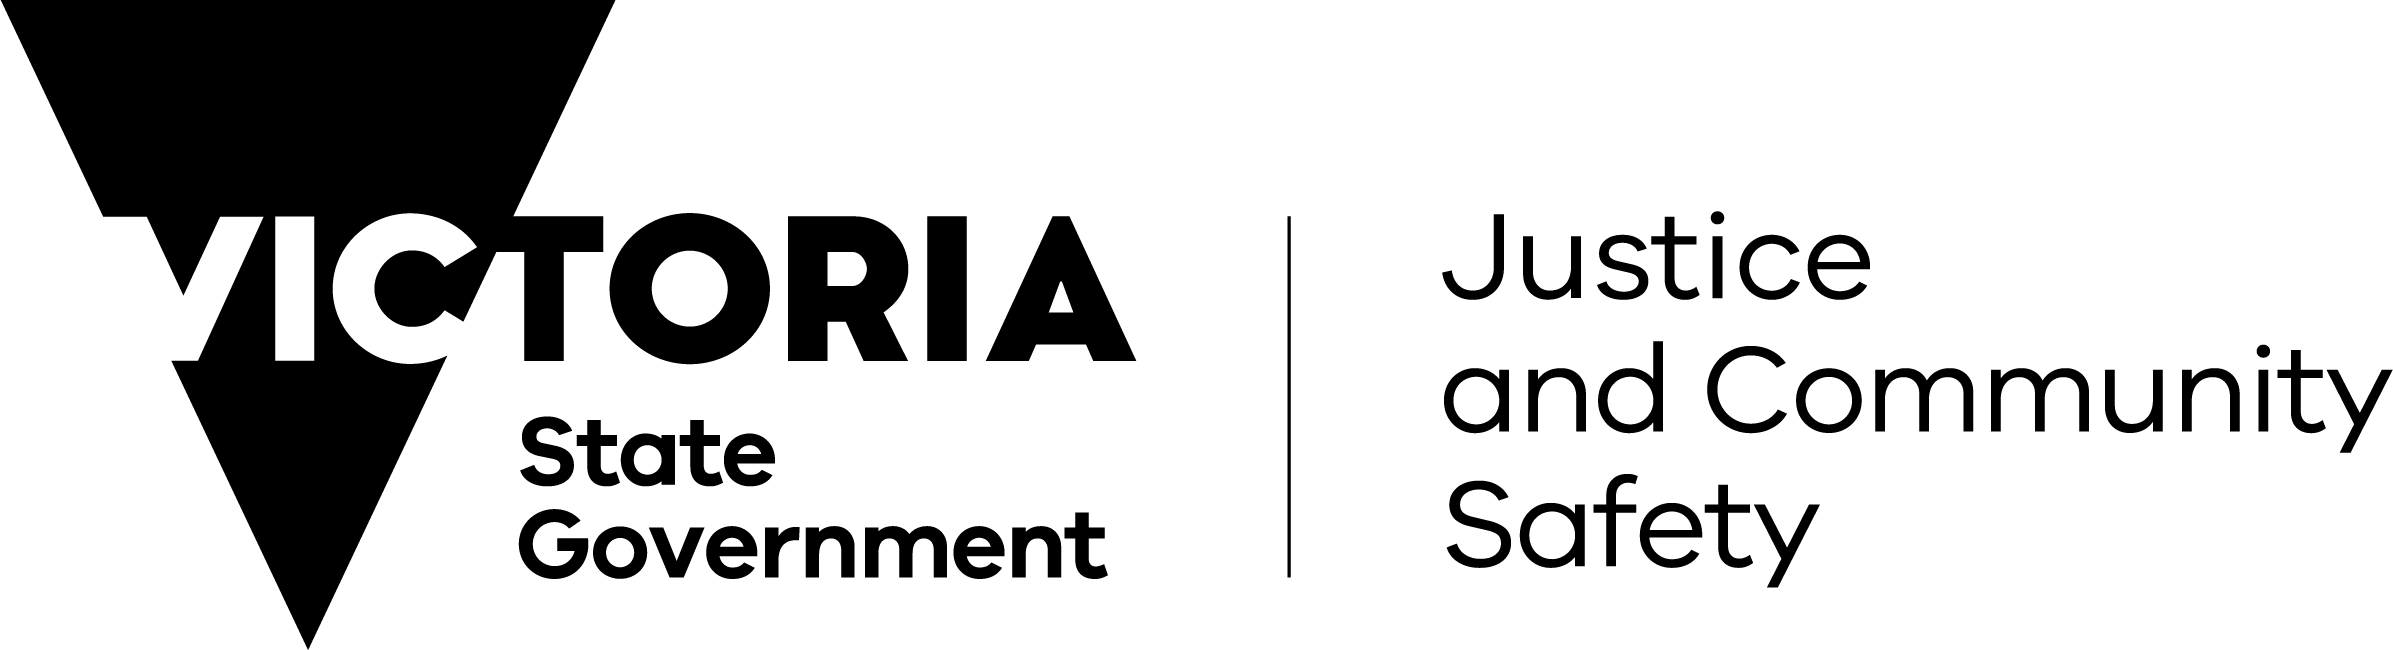 Department of Justice and Regulation Victoria - logo